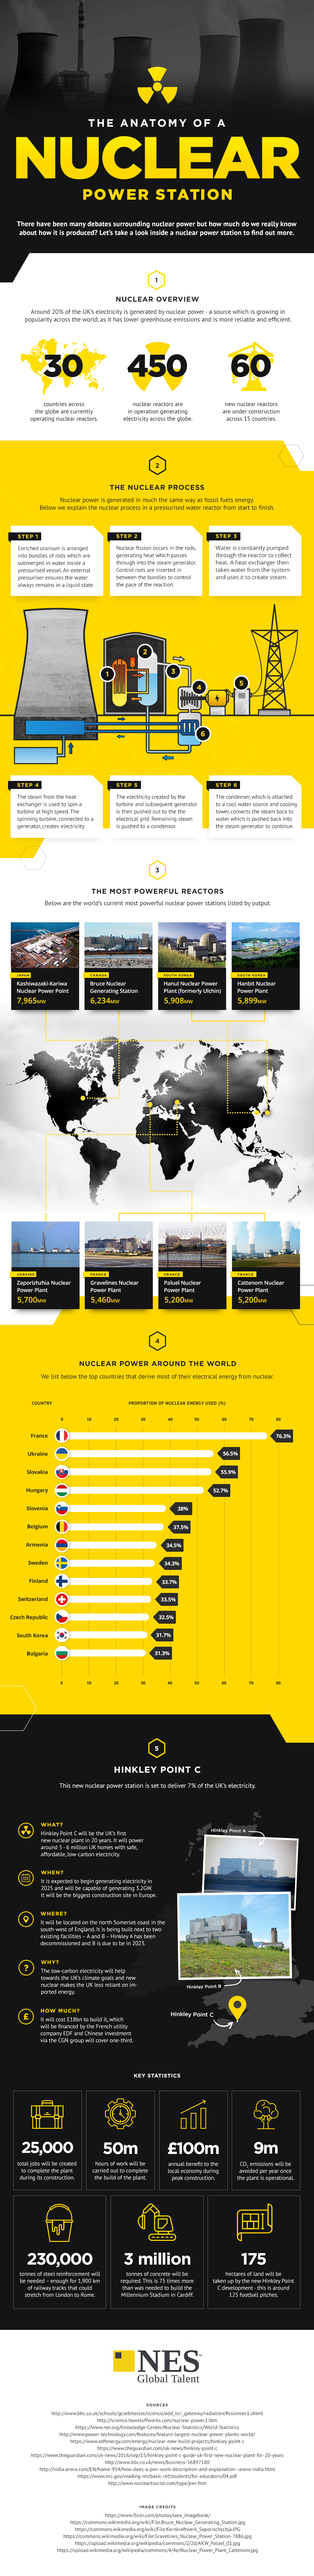 Anatomy of a nuclear power station.jpg